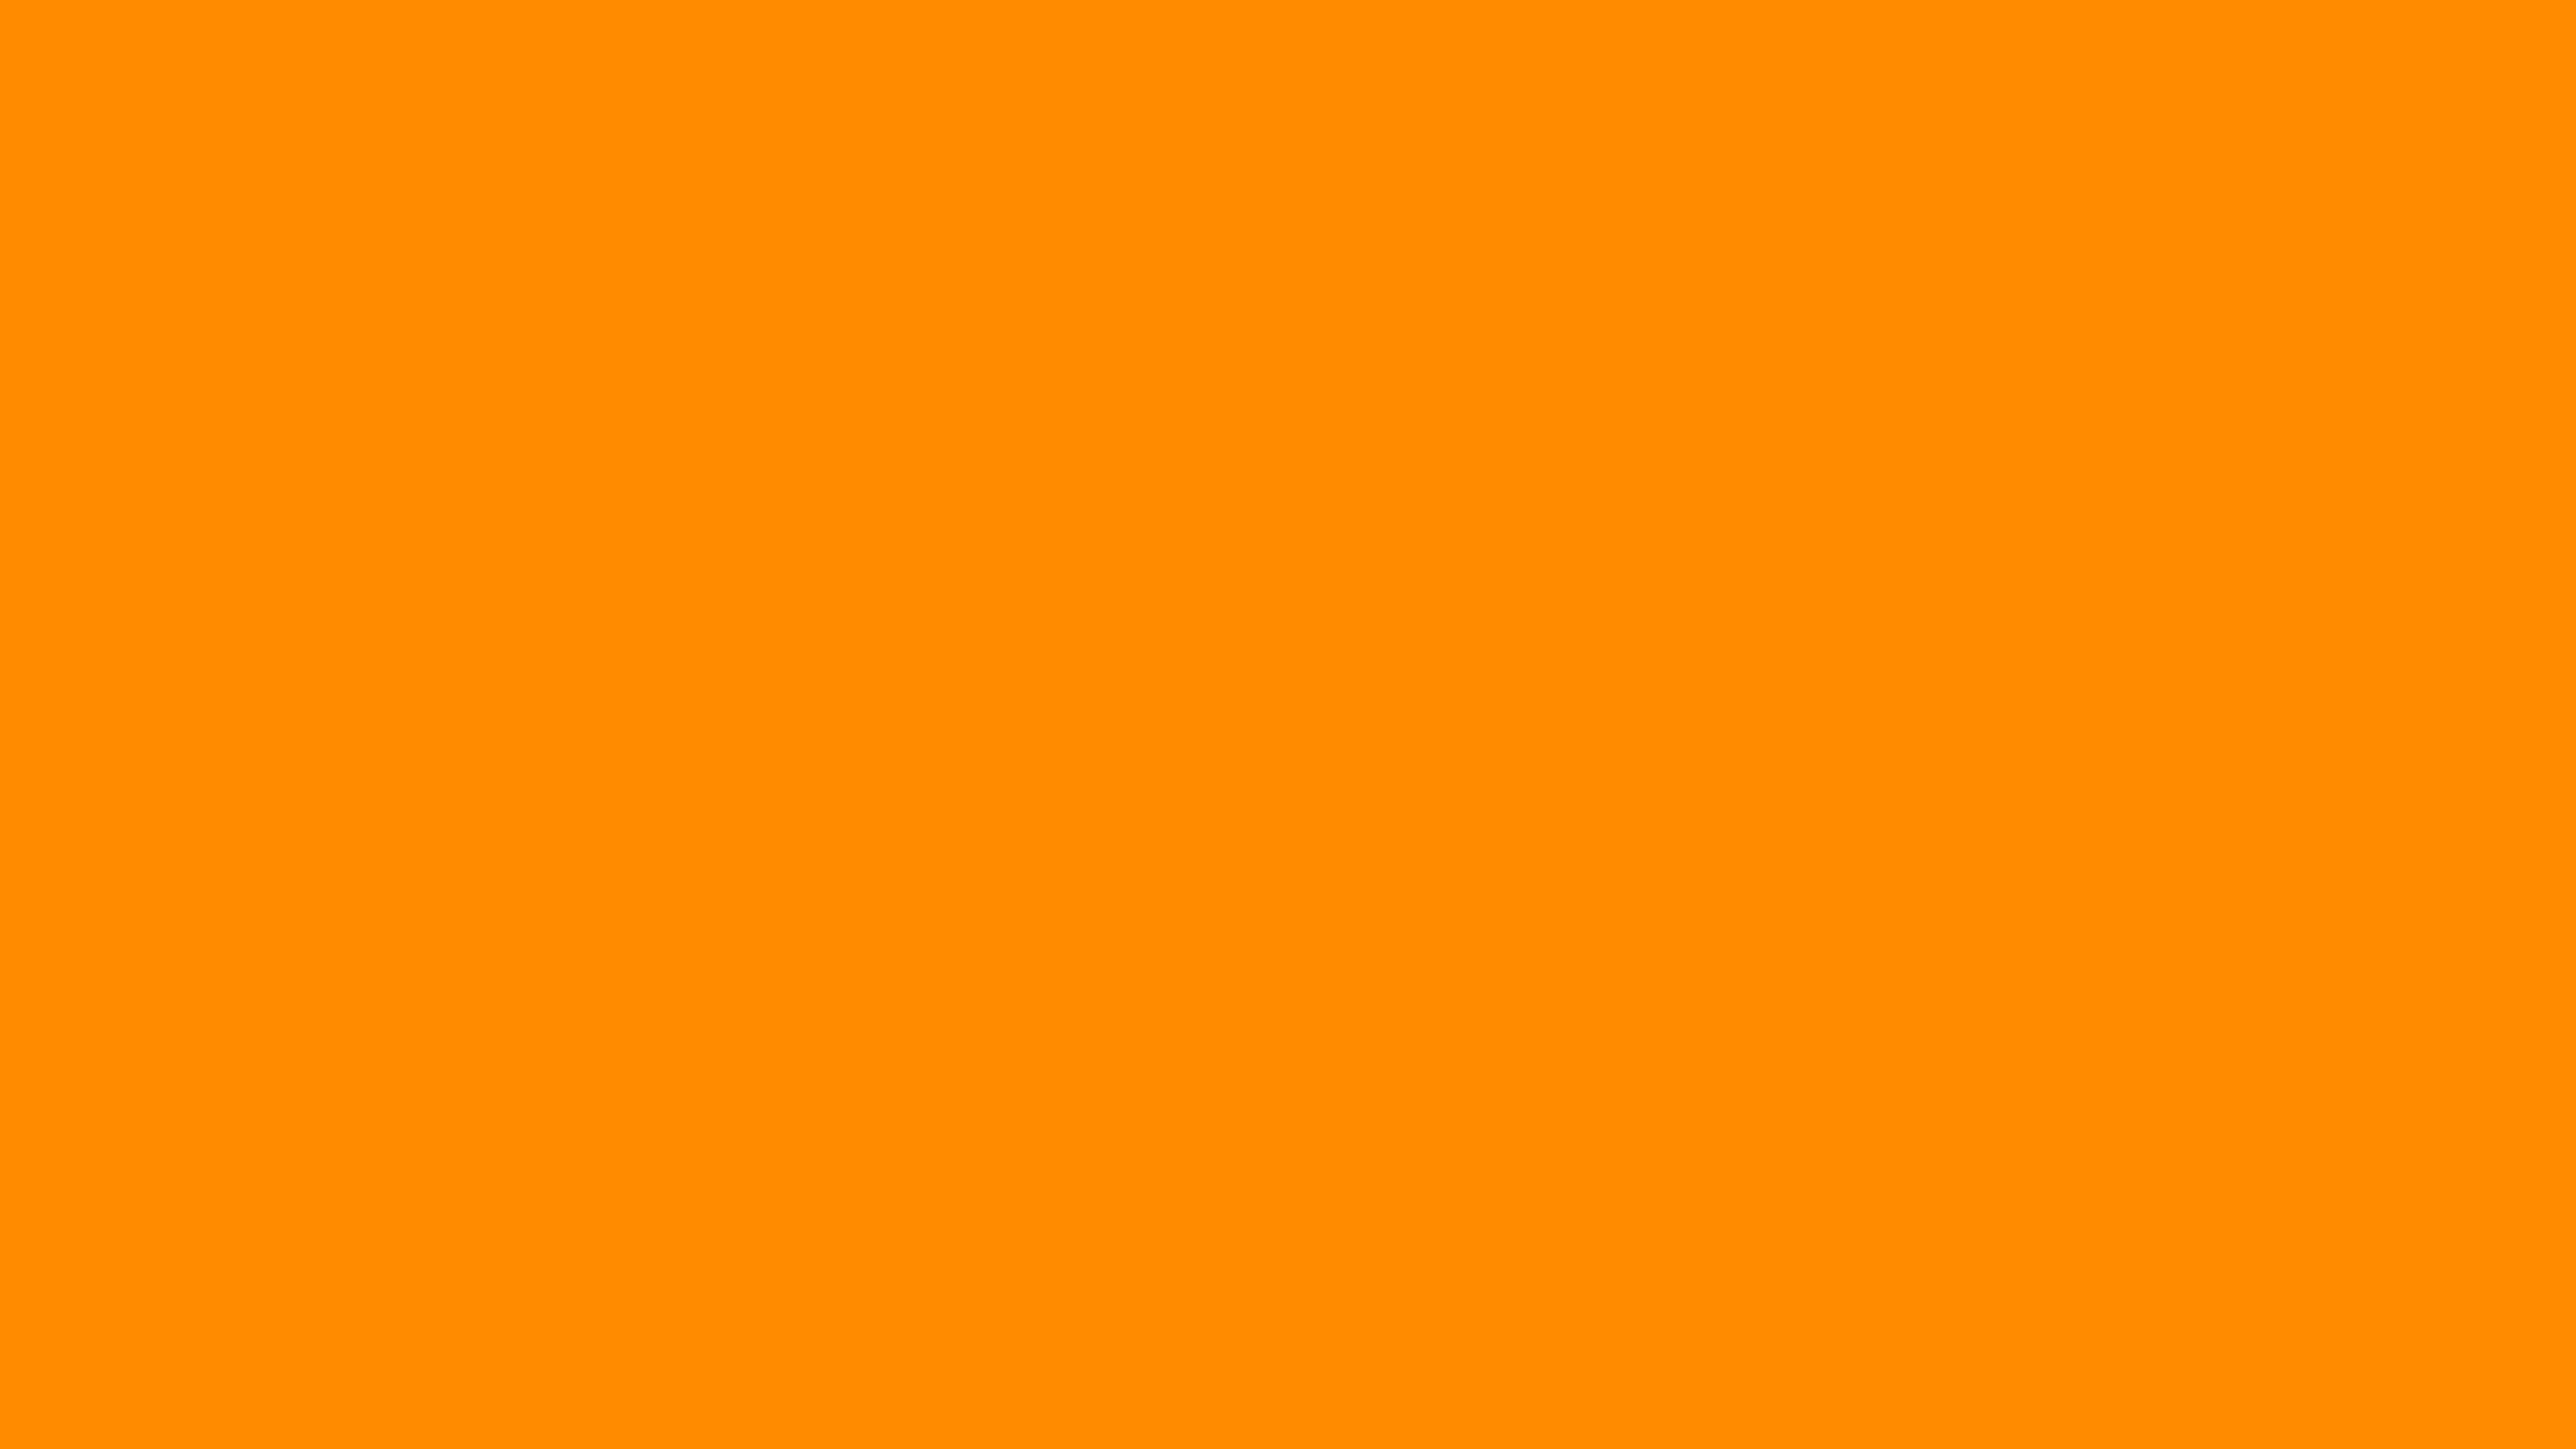 5120x2880 Dark Orange Solid Color Background